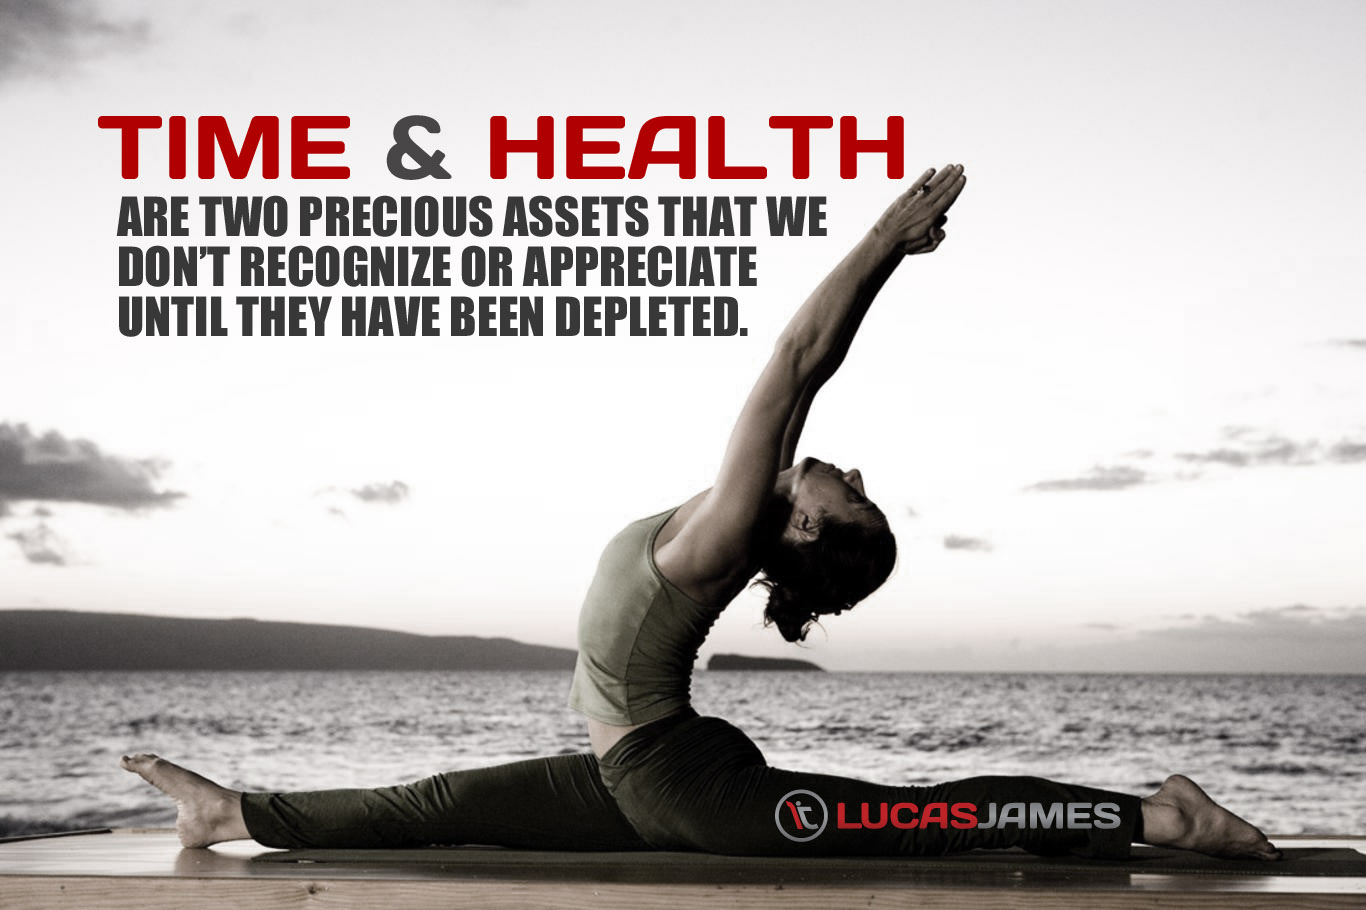 Fitness Motivational Quotes Time And Health Are Two Precious Assets That We Don't Recognize Or Appreciate Until They Have Been Depleted